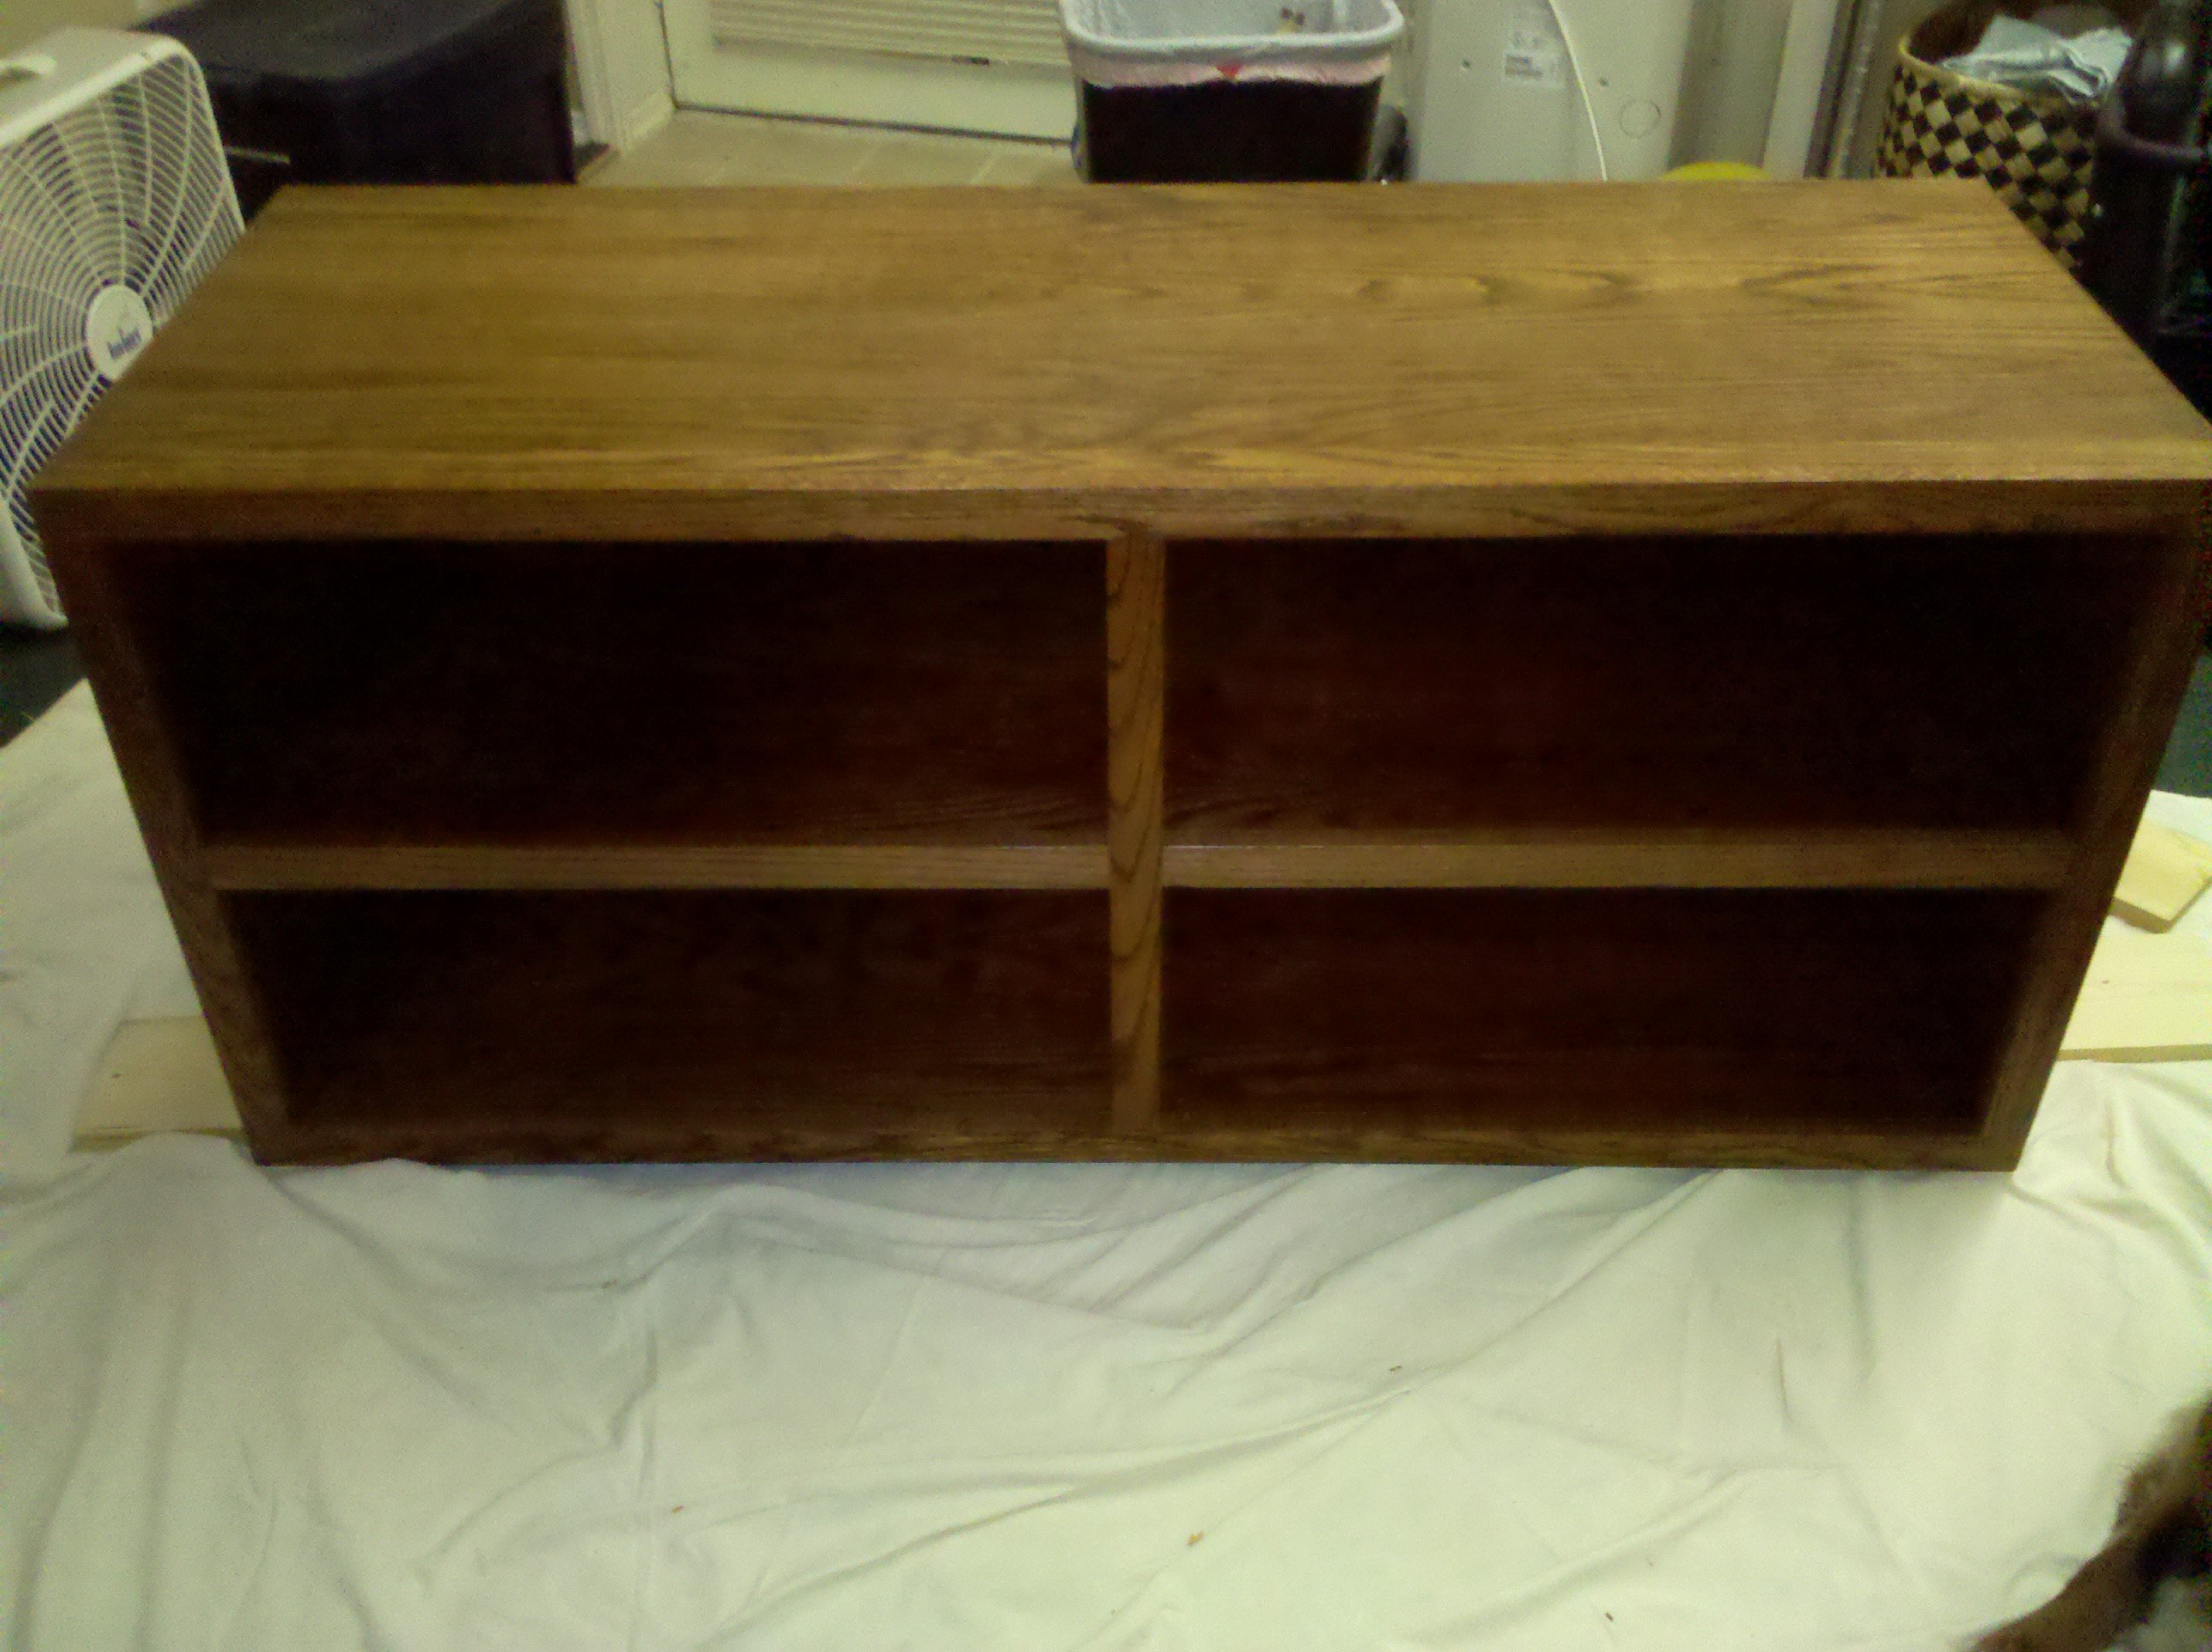 An 'Emergency' Woodworking Project